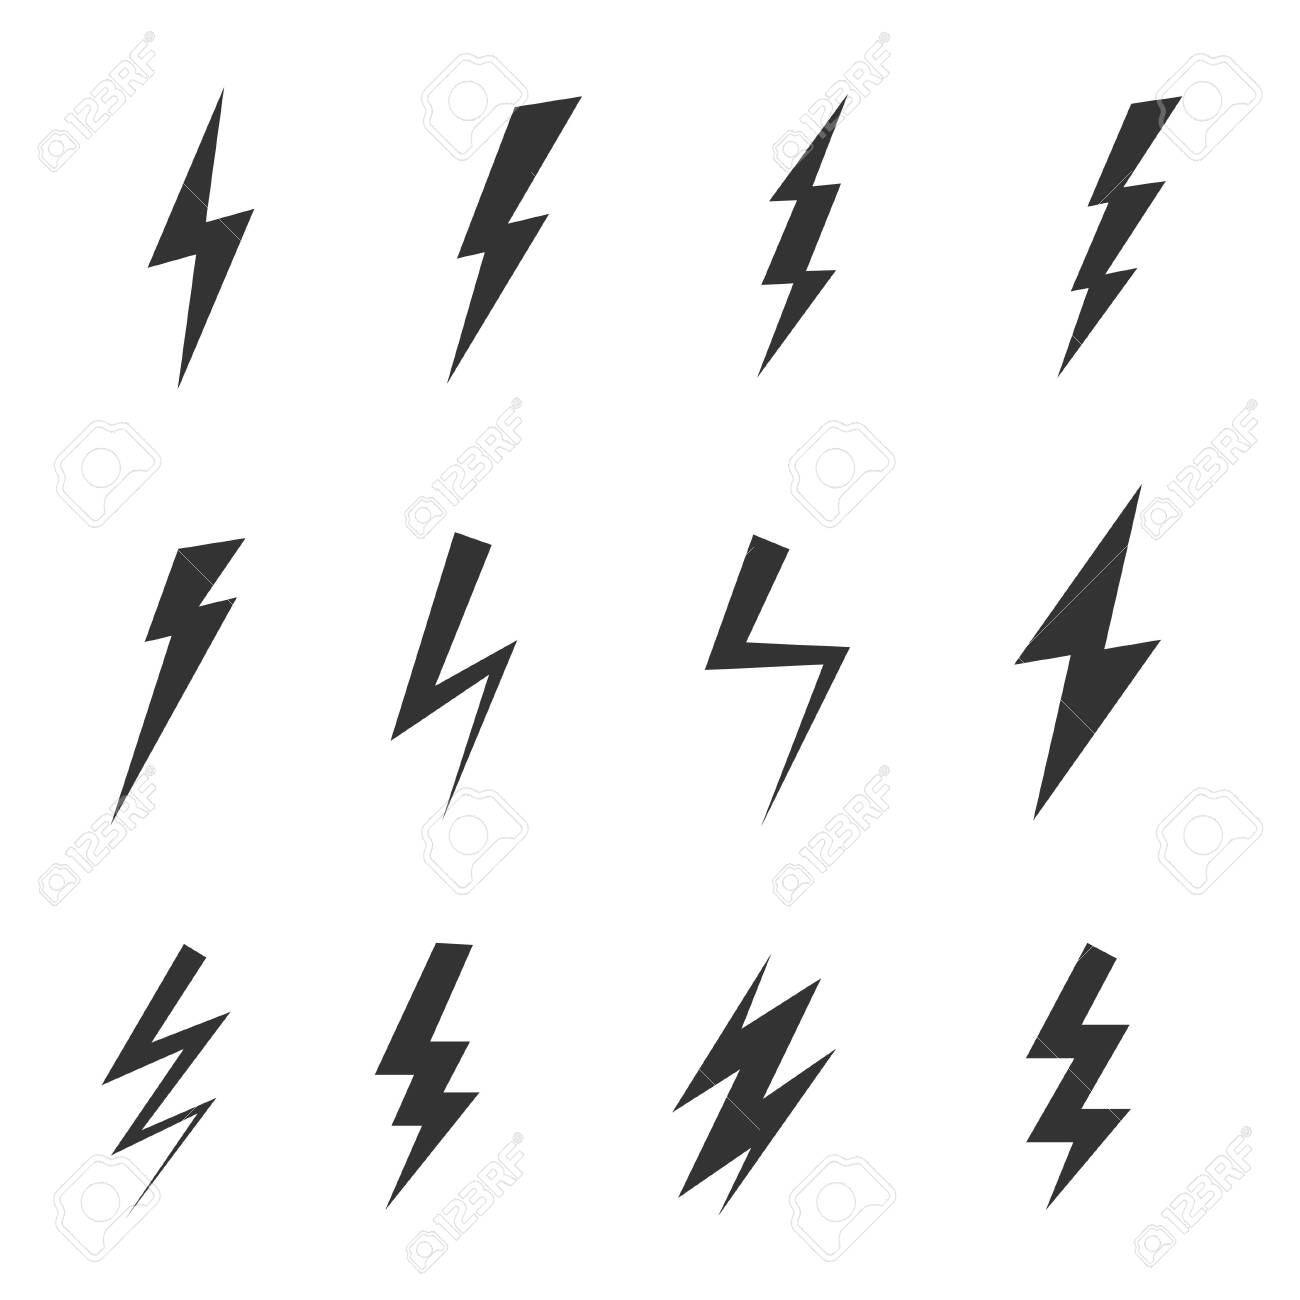 Simple icon storm or thunder and lightning strike isolated - 145175150